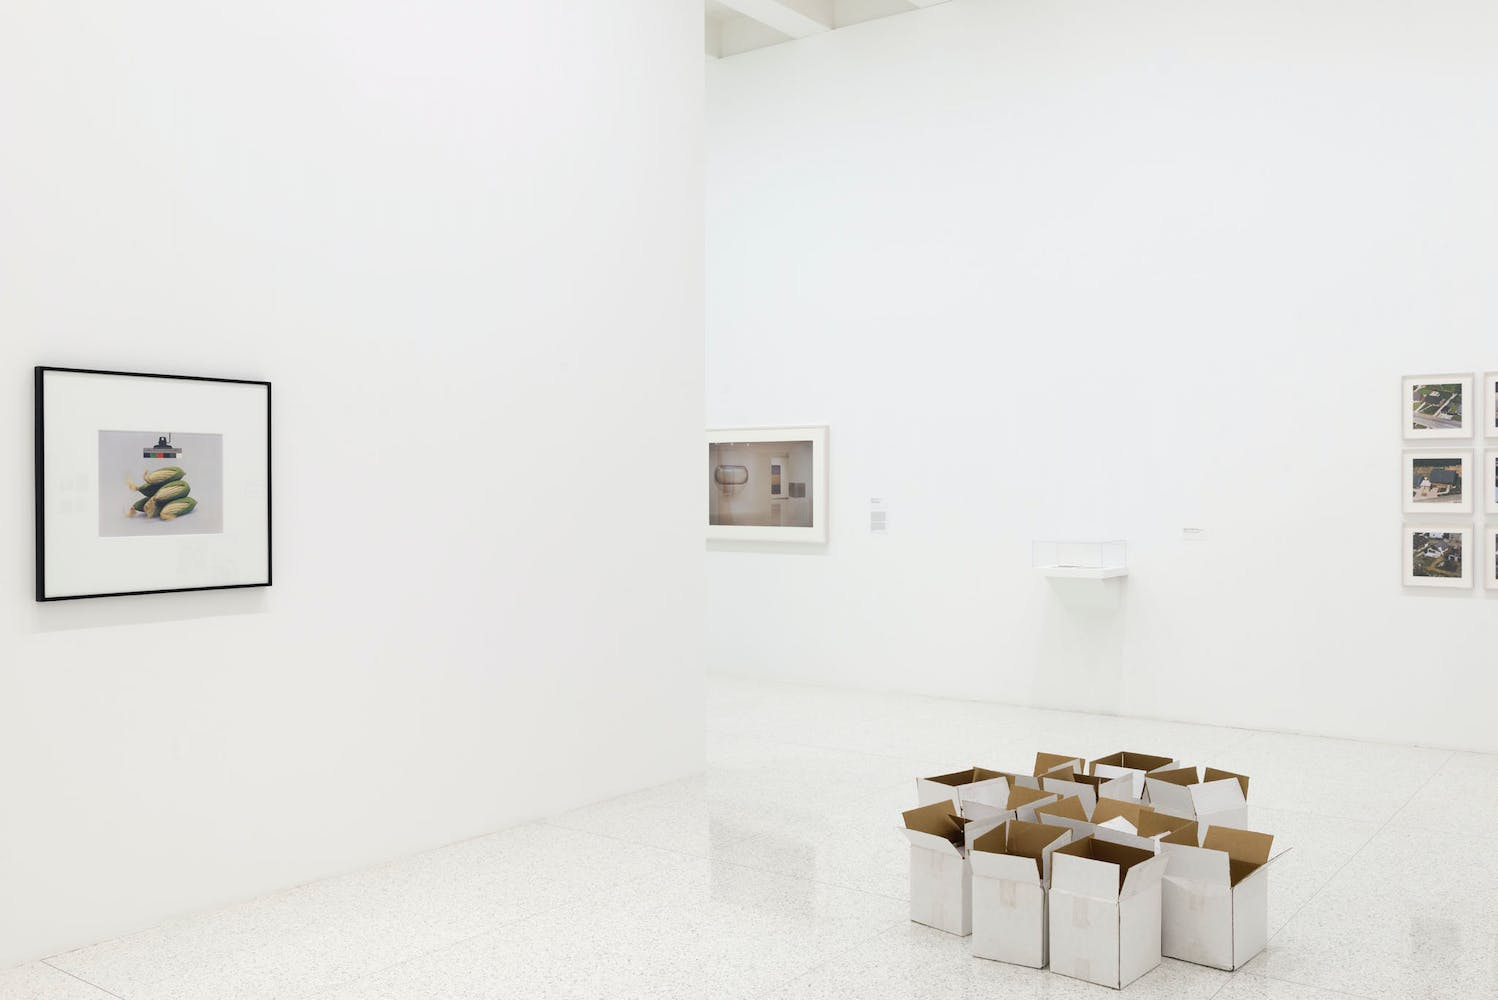 View of the exhibition Ordinary Pictures, 2016